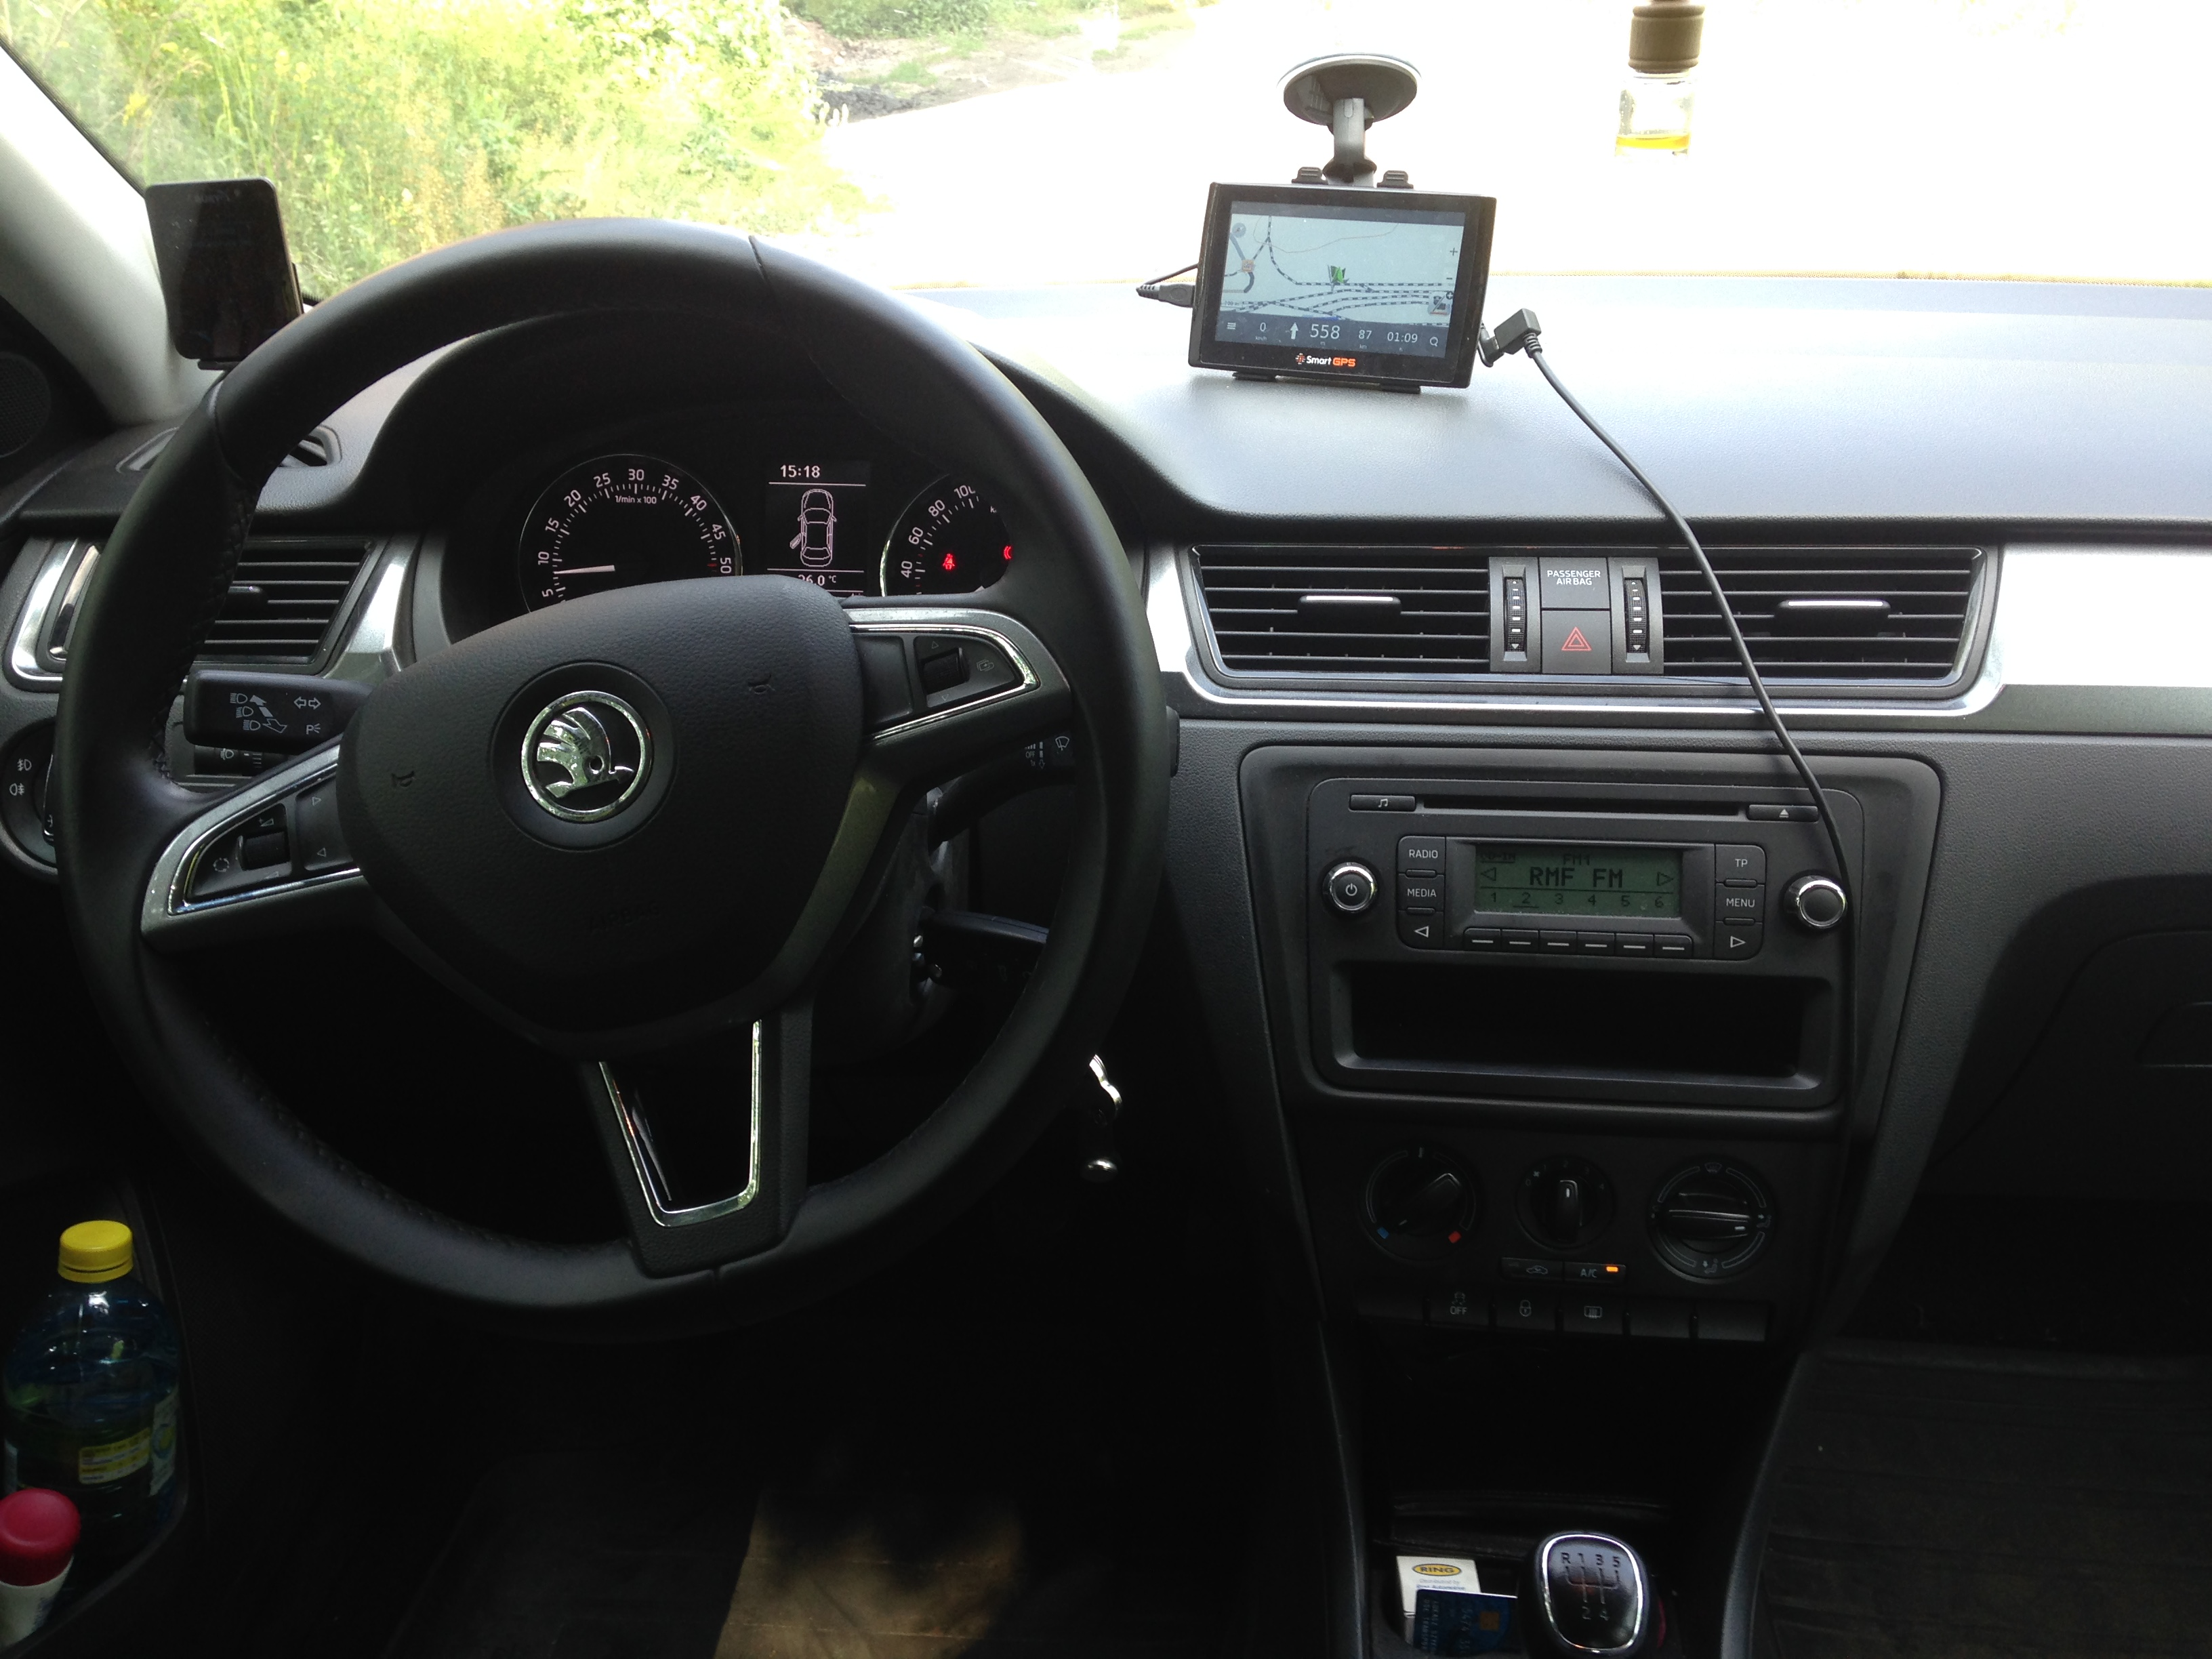 File:Skoda Rapid 1.6 TDI interior.jpg - Wikimedia Commons